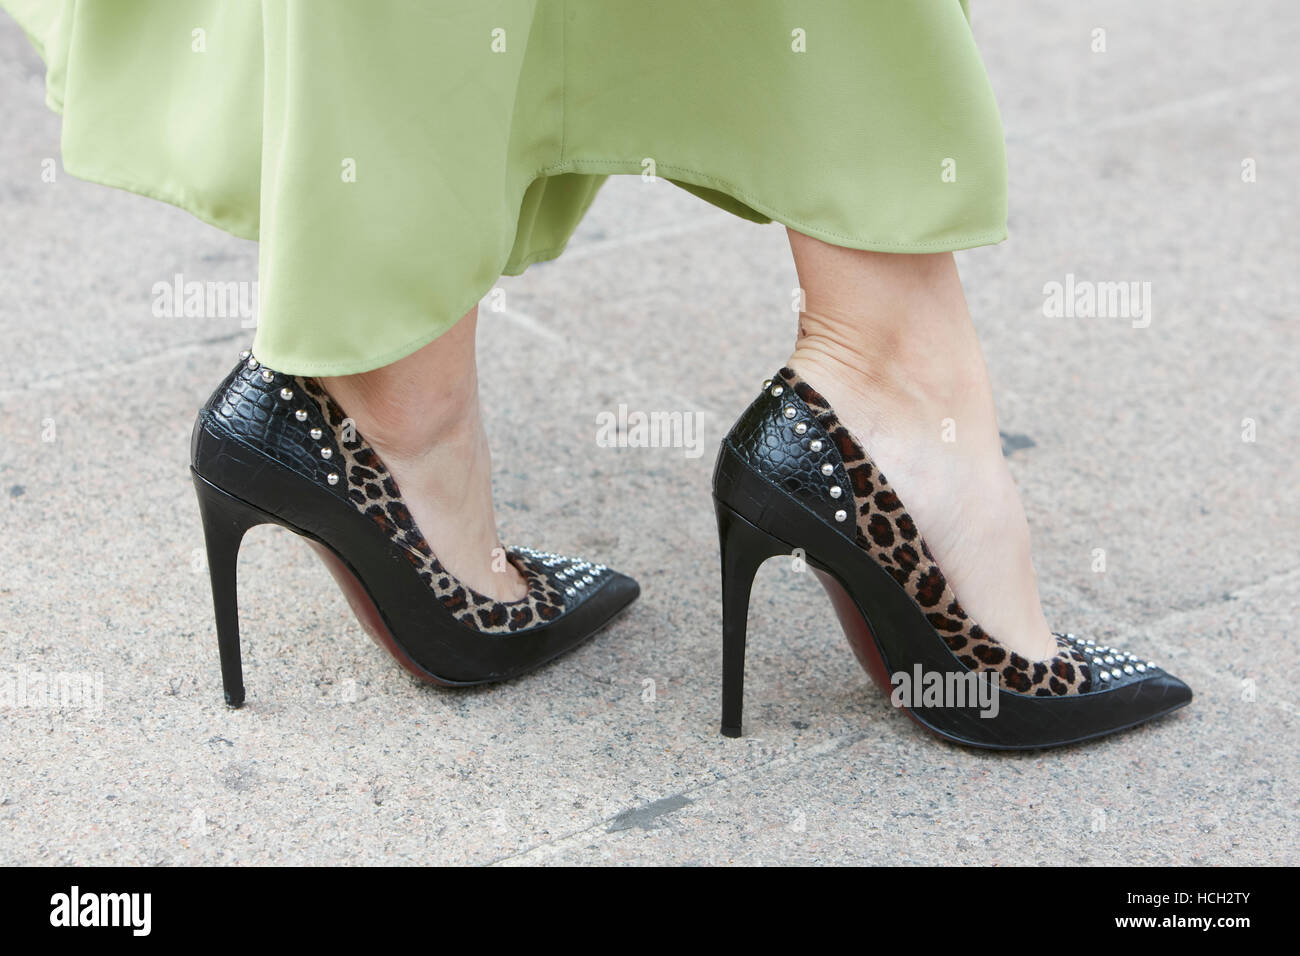 Woman with high heel black leather shoes and studs before Cristiano Burani fashion show, Milan Fashion Week street - Stock Image